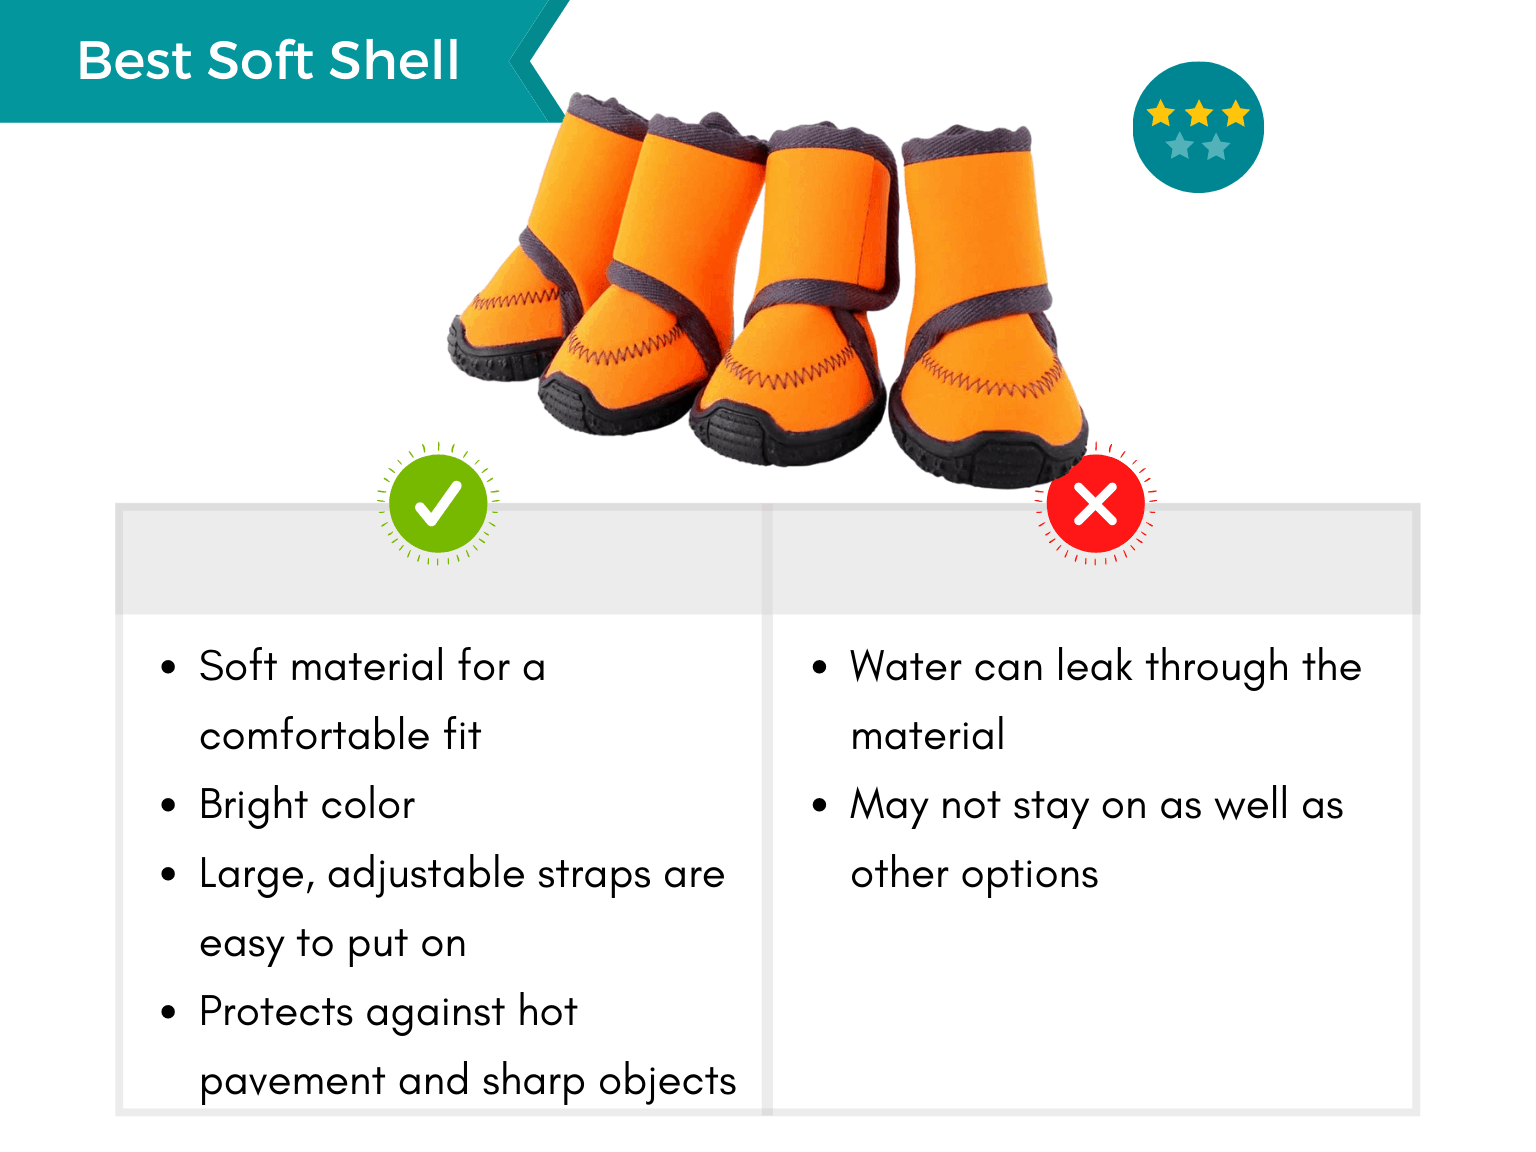 Infographic displaying pros and cons of the best soft shell waterproof dog boots.